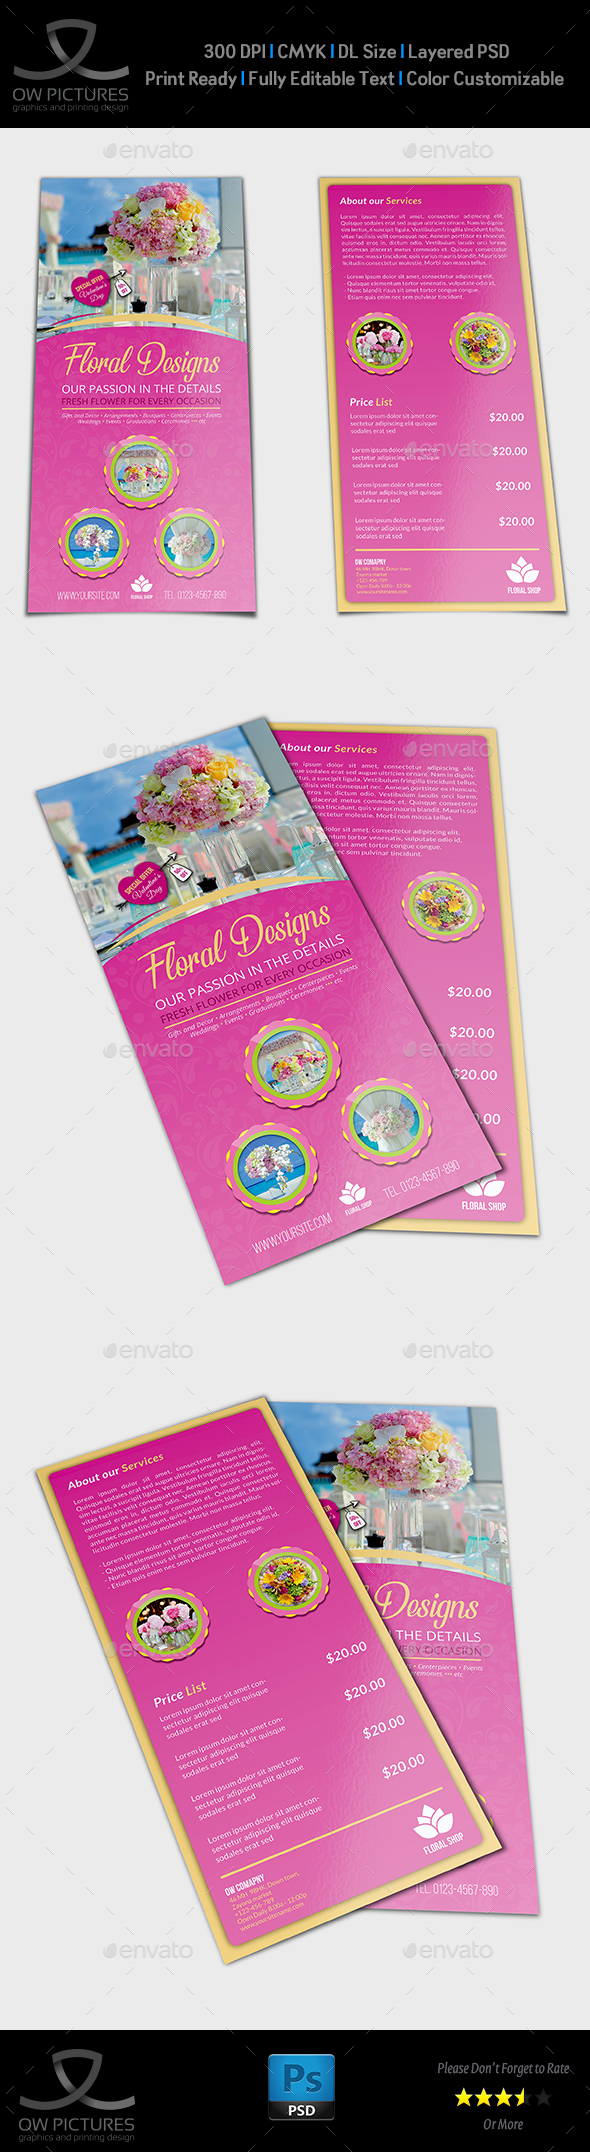 Floral Designs Flyer DL Size Template by OWPictures | GraphicRiver